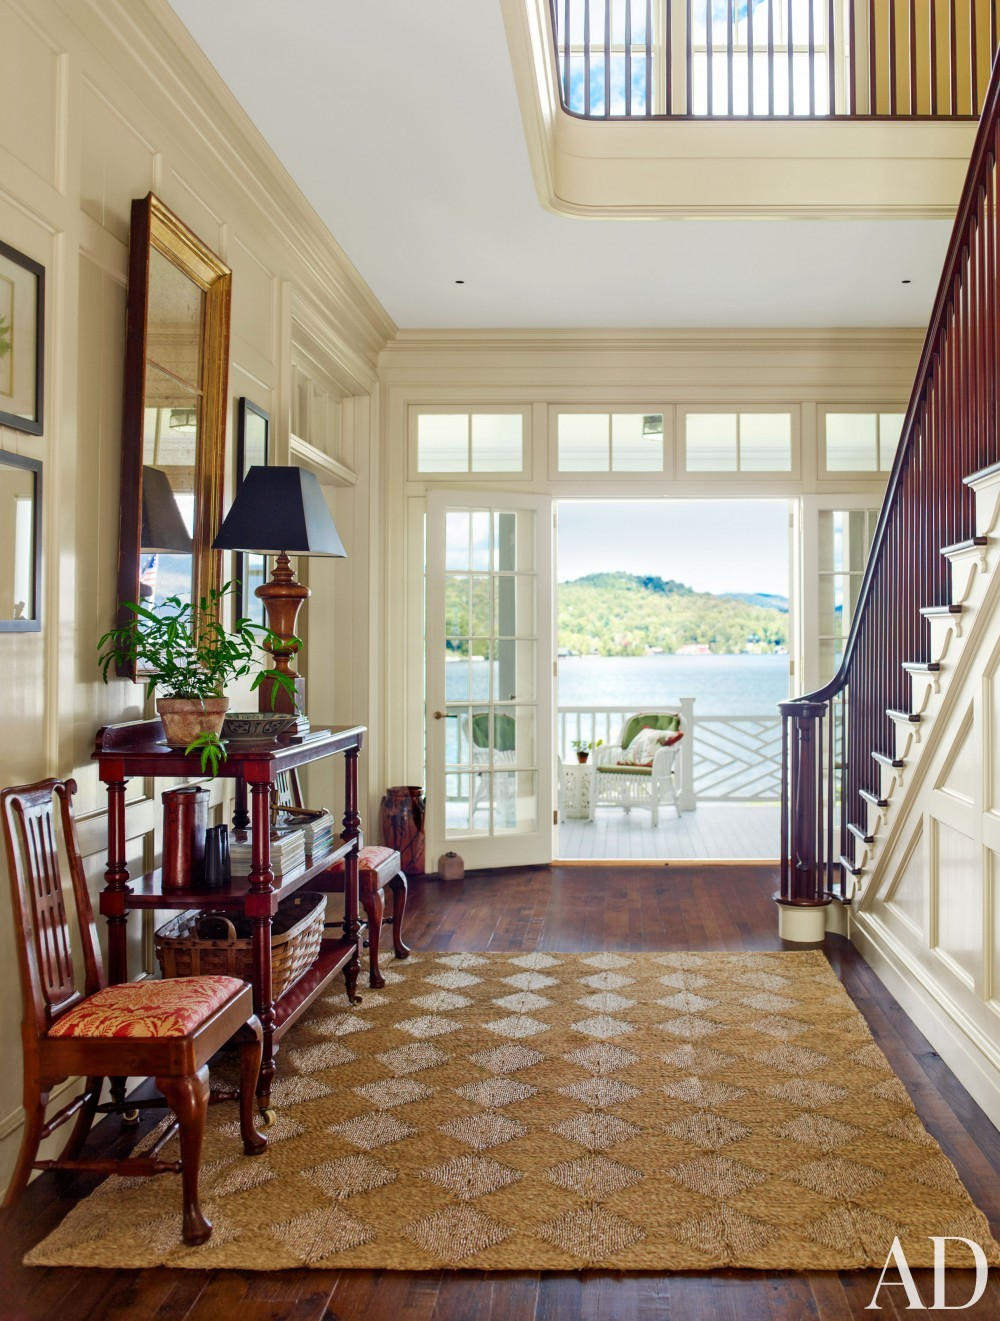 Traditional Entrance Hall and G. P. Schafer Architect in Lake Placid, NY